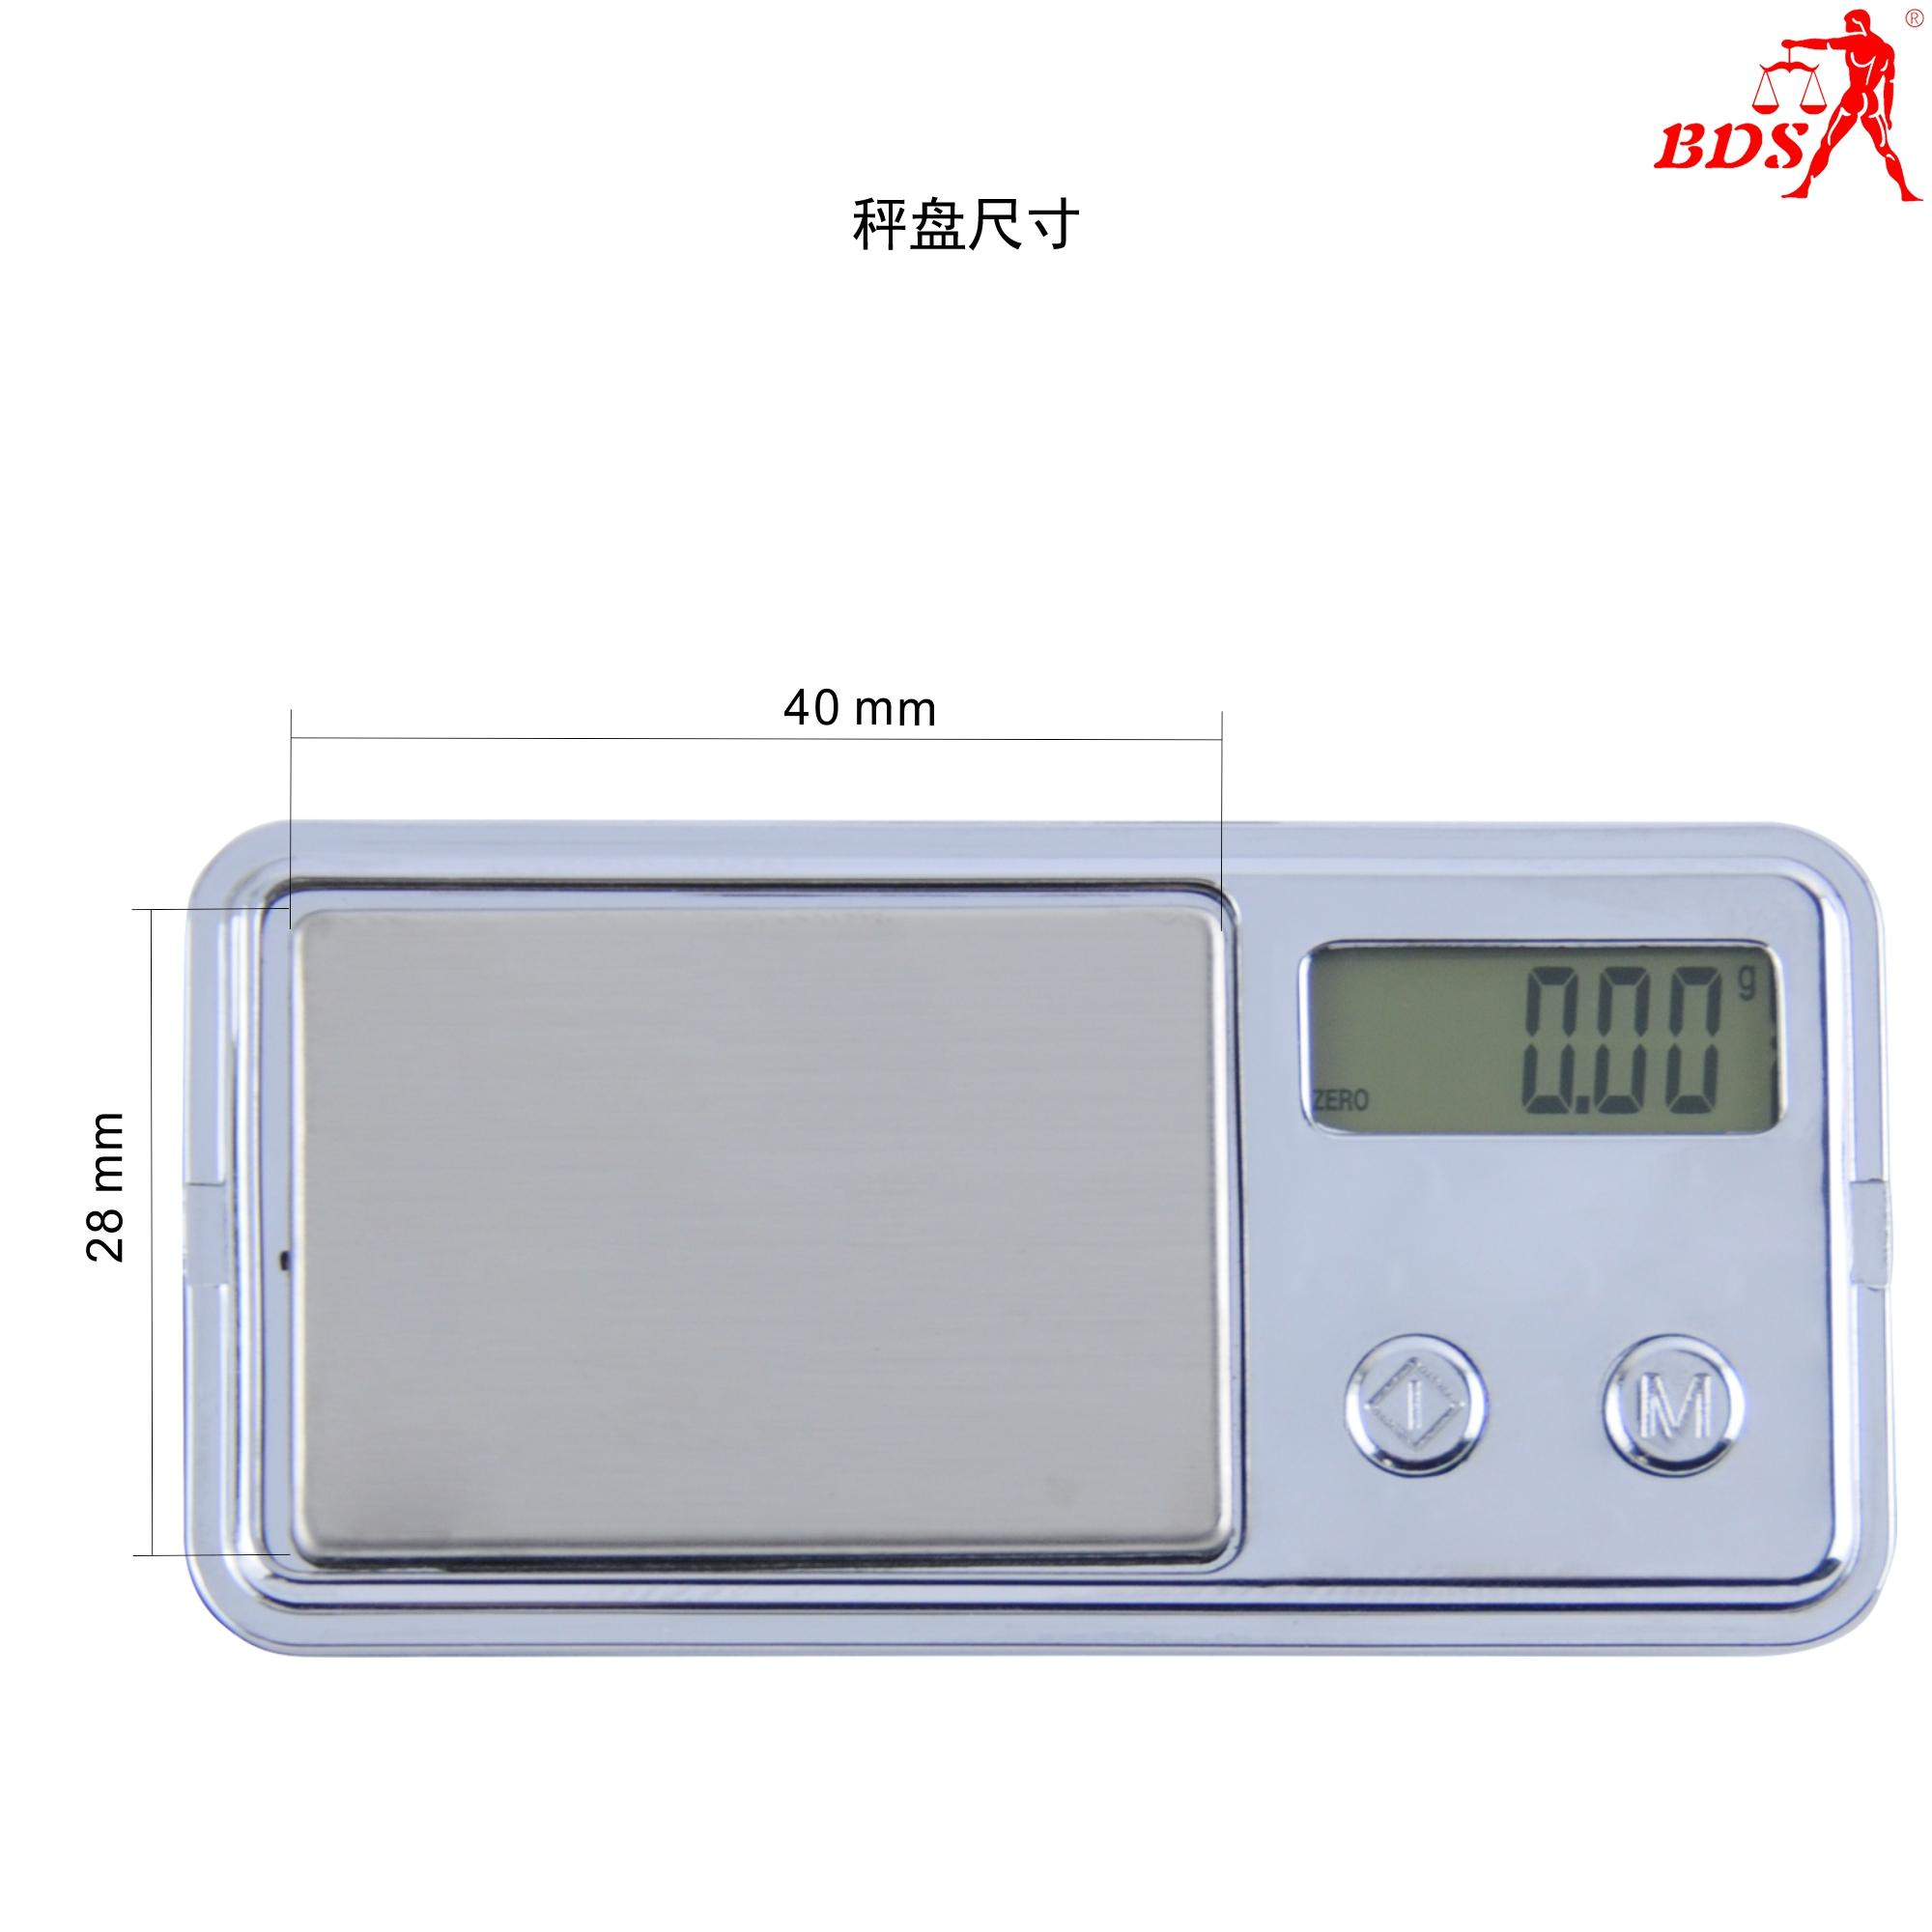 Shenzhen BDS908 mini jewelry scale , pocket scale  4